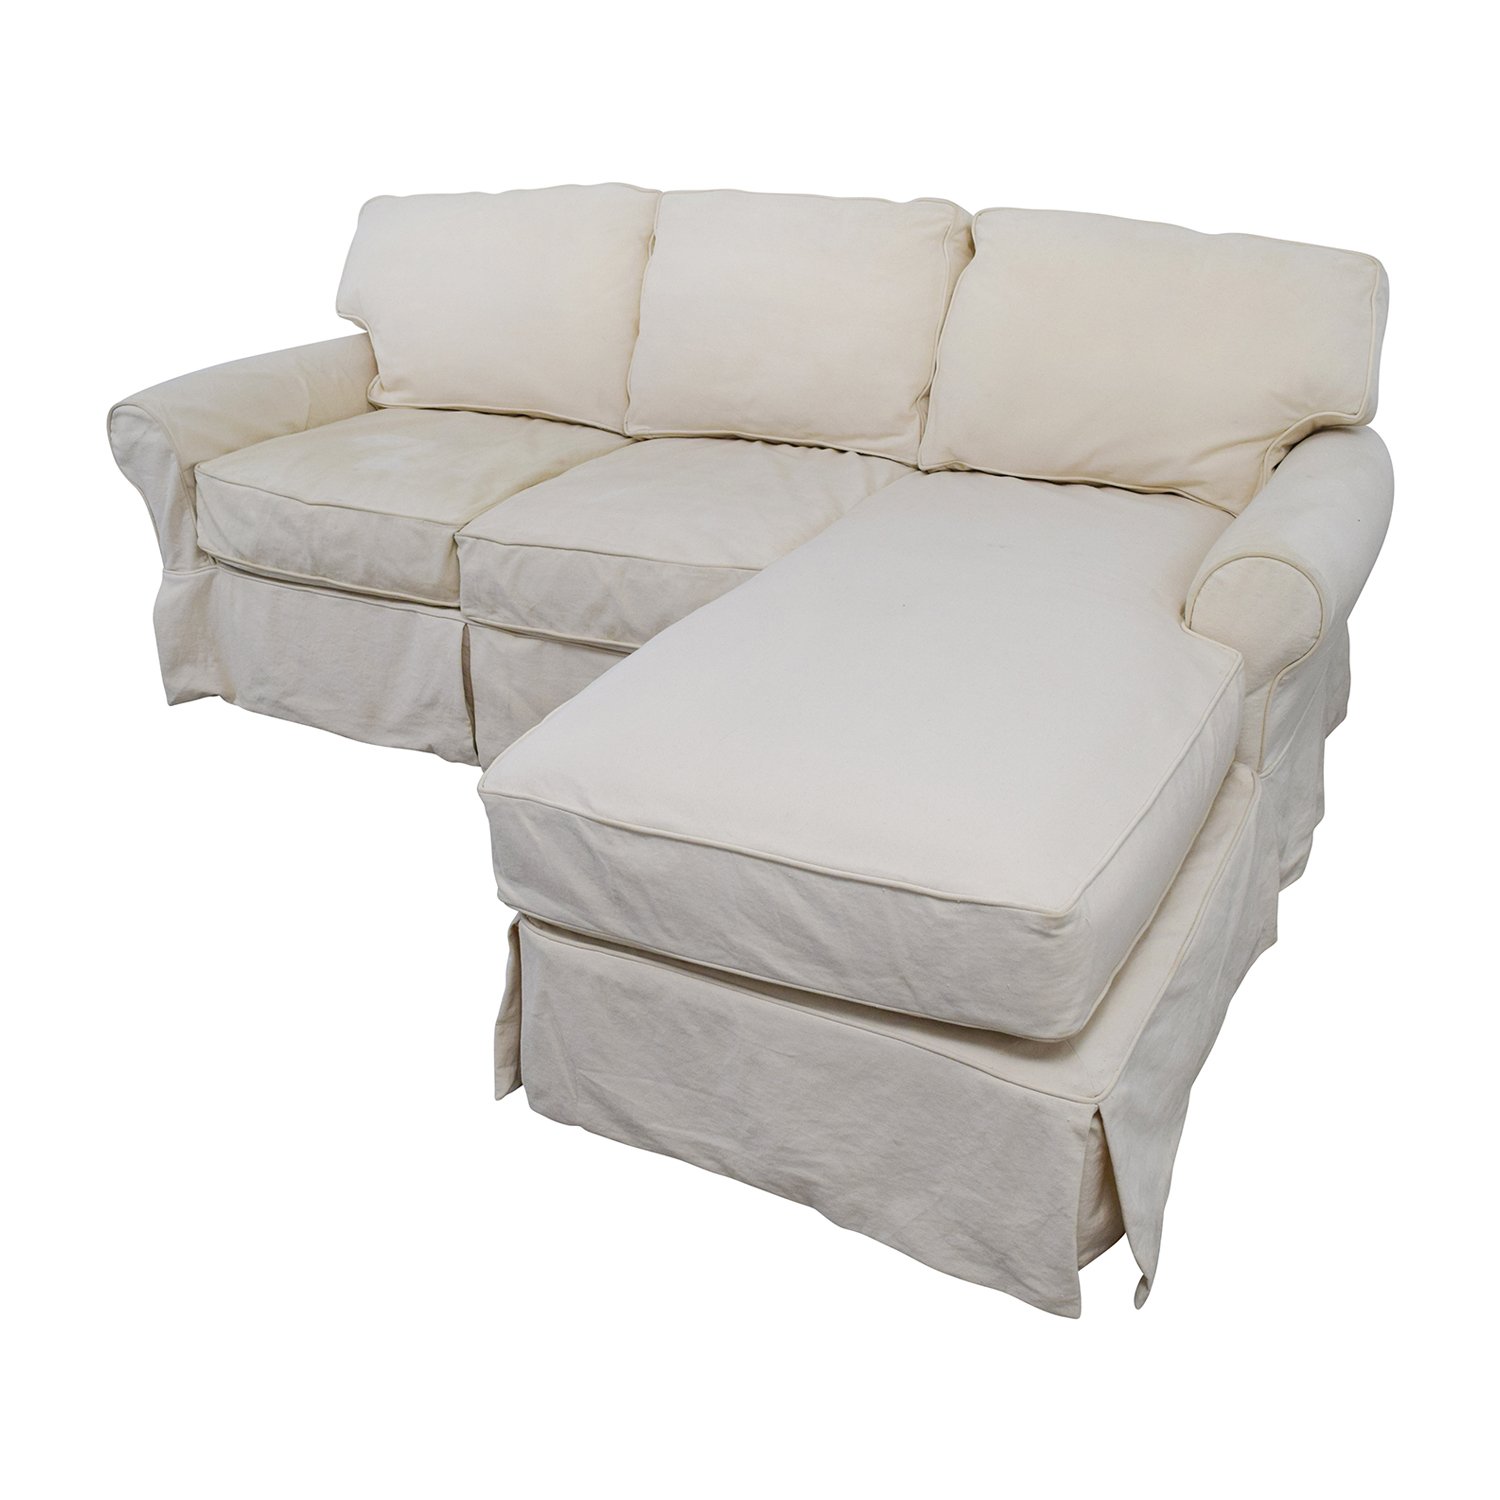 Shop Home Decorators Collection Home Decorators Collection Mayfair White  Sectional Online